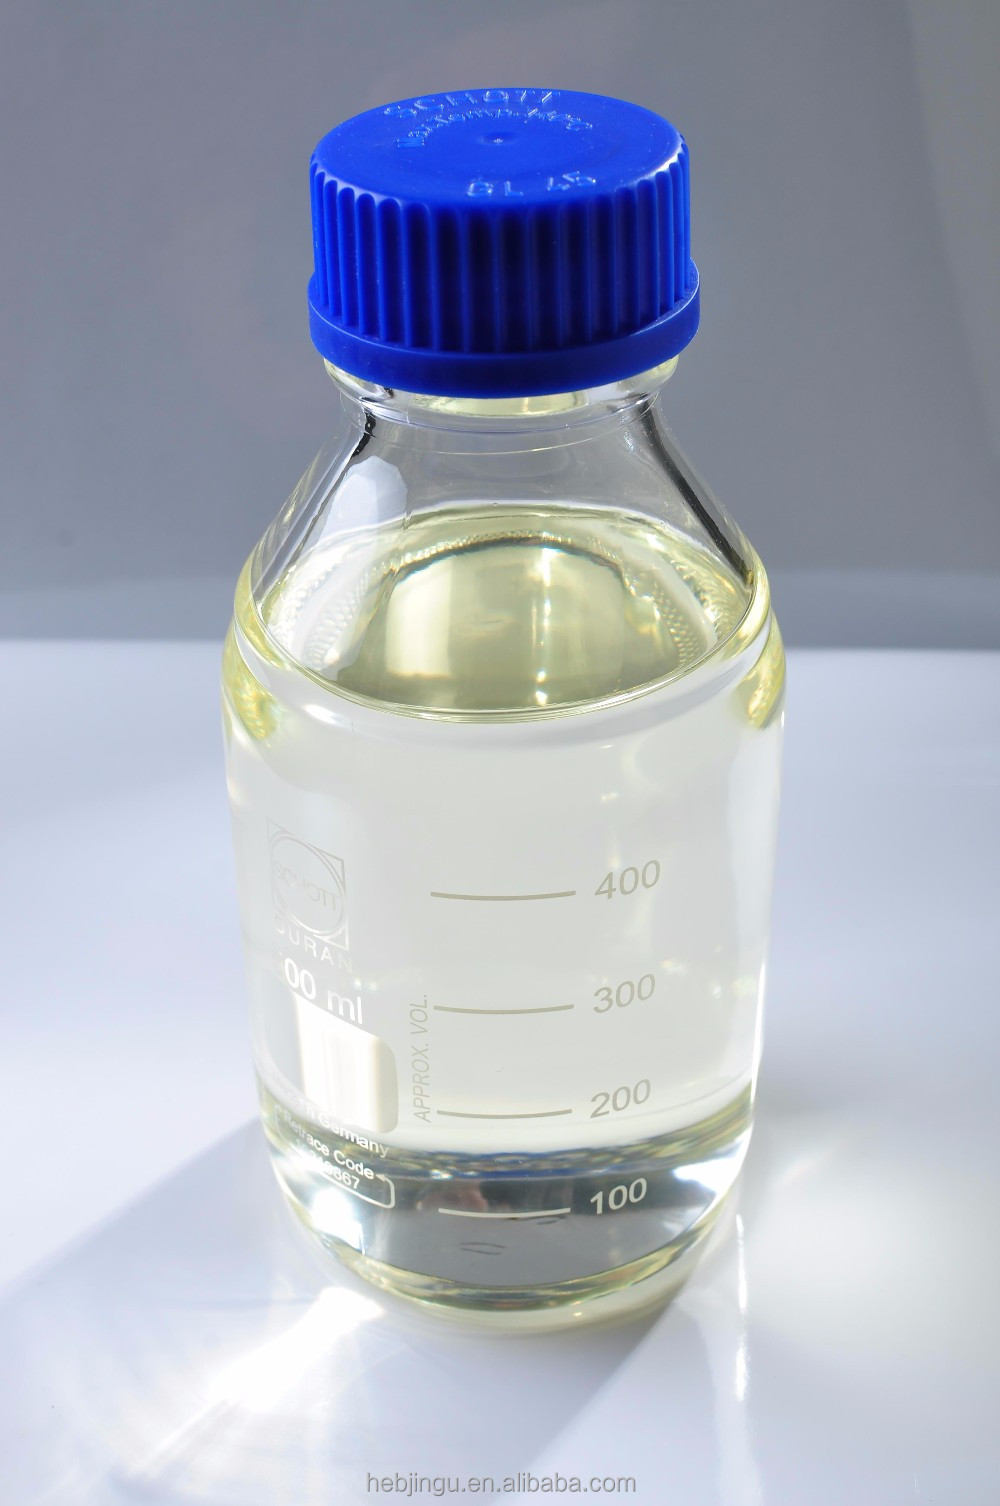 Manufacturer Directory Epoxidized Soybean Oil suppliers